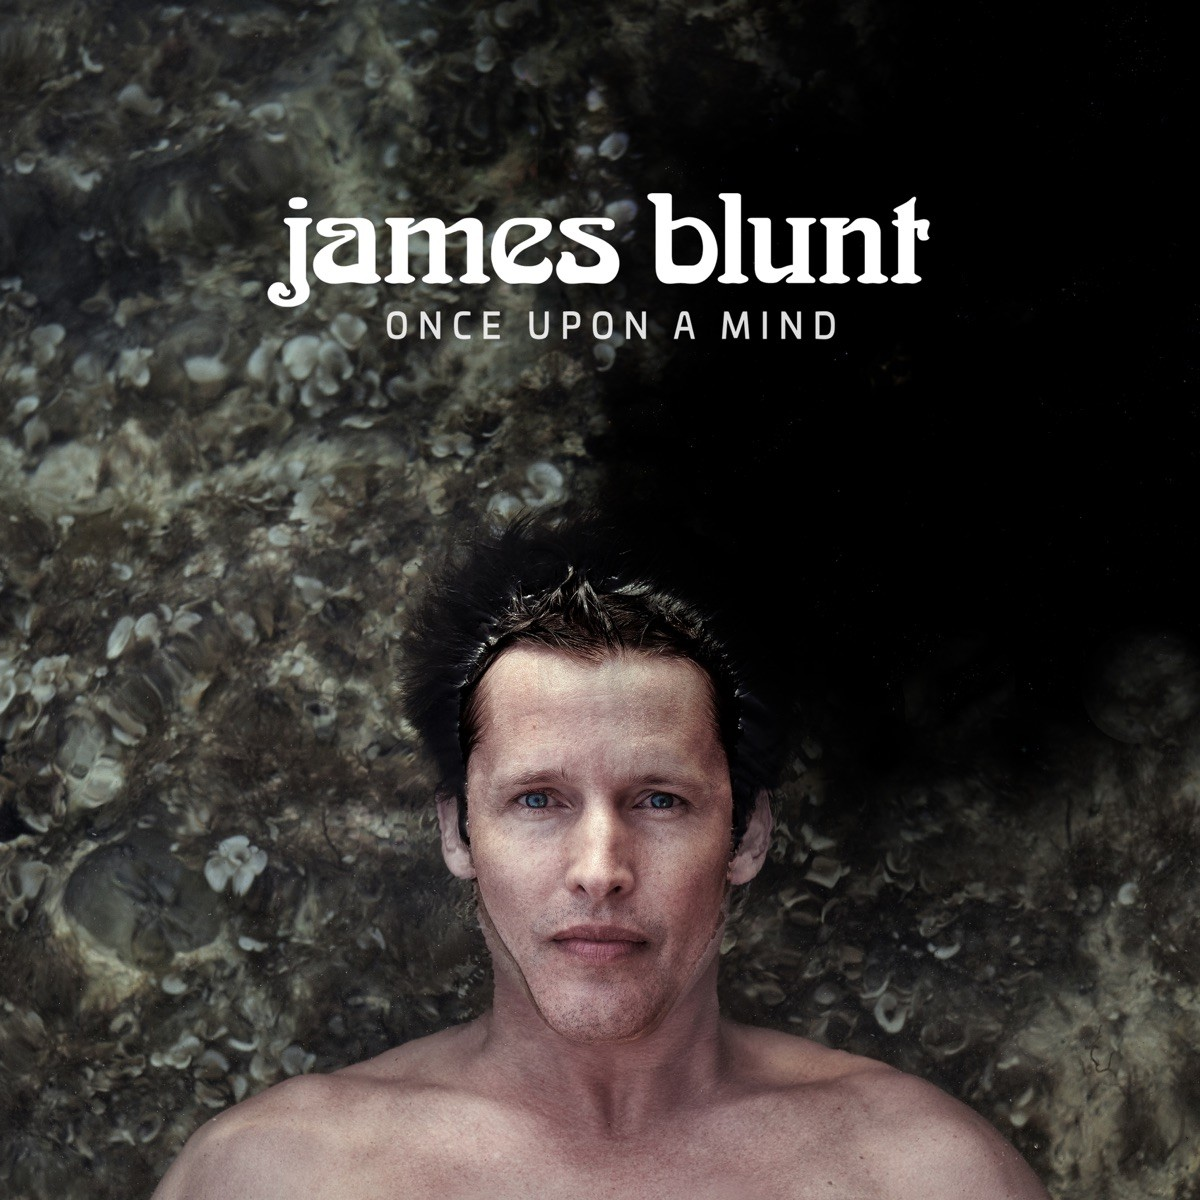 James Blunt - Once Upon a Mind CD - ATCD 10452